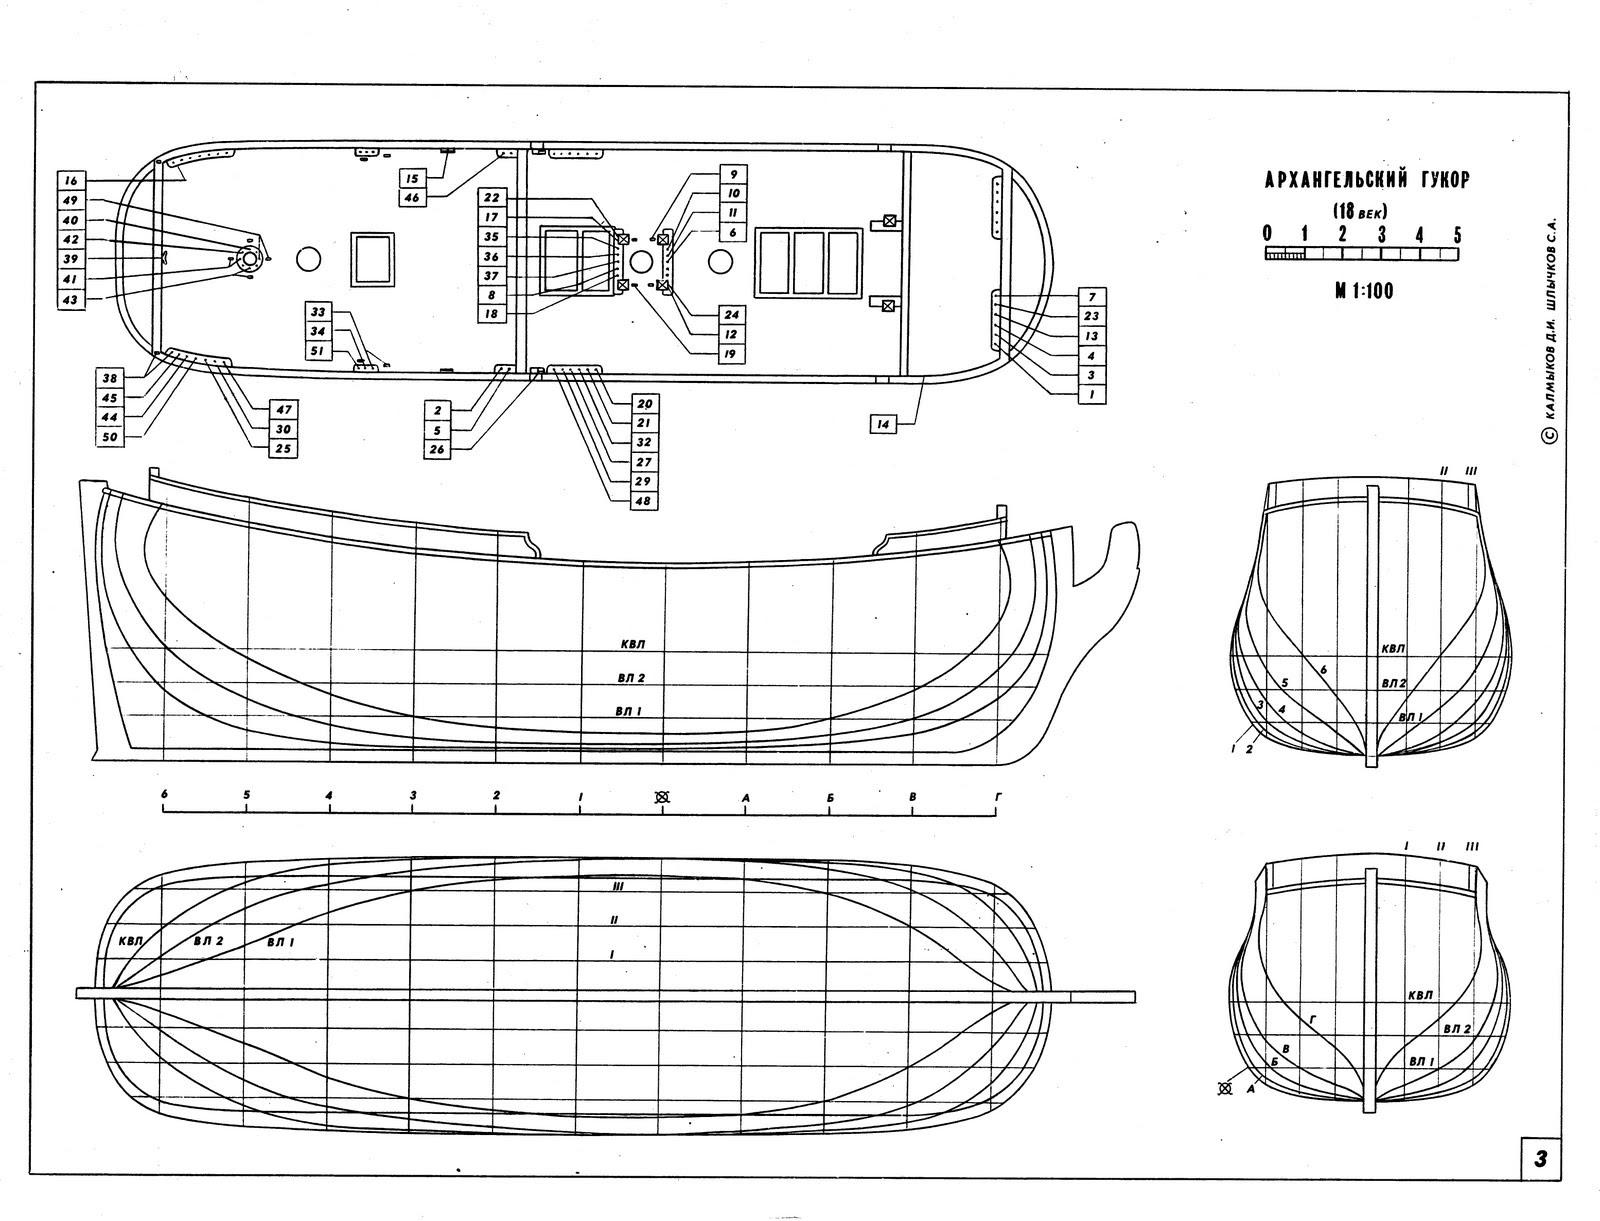 how to build model pirate ship download boat plans